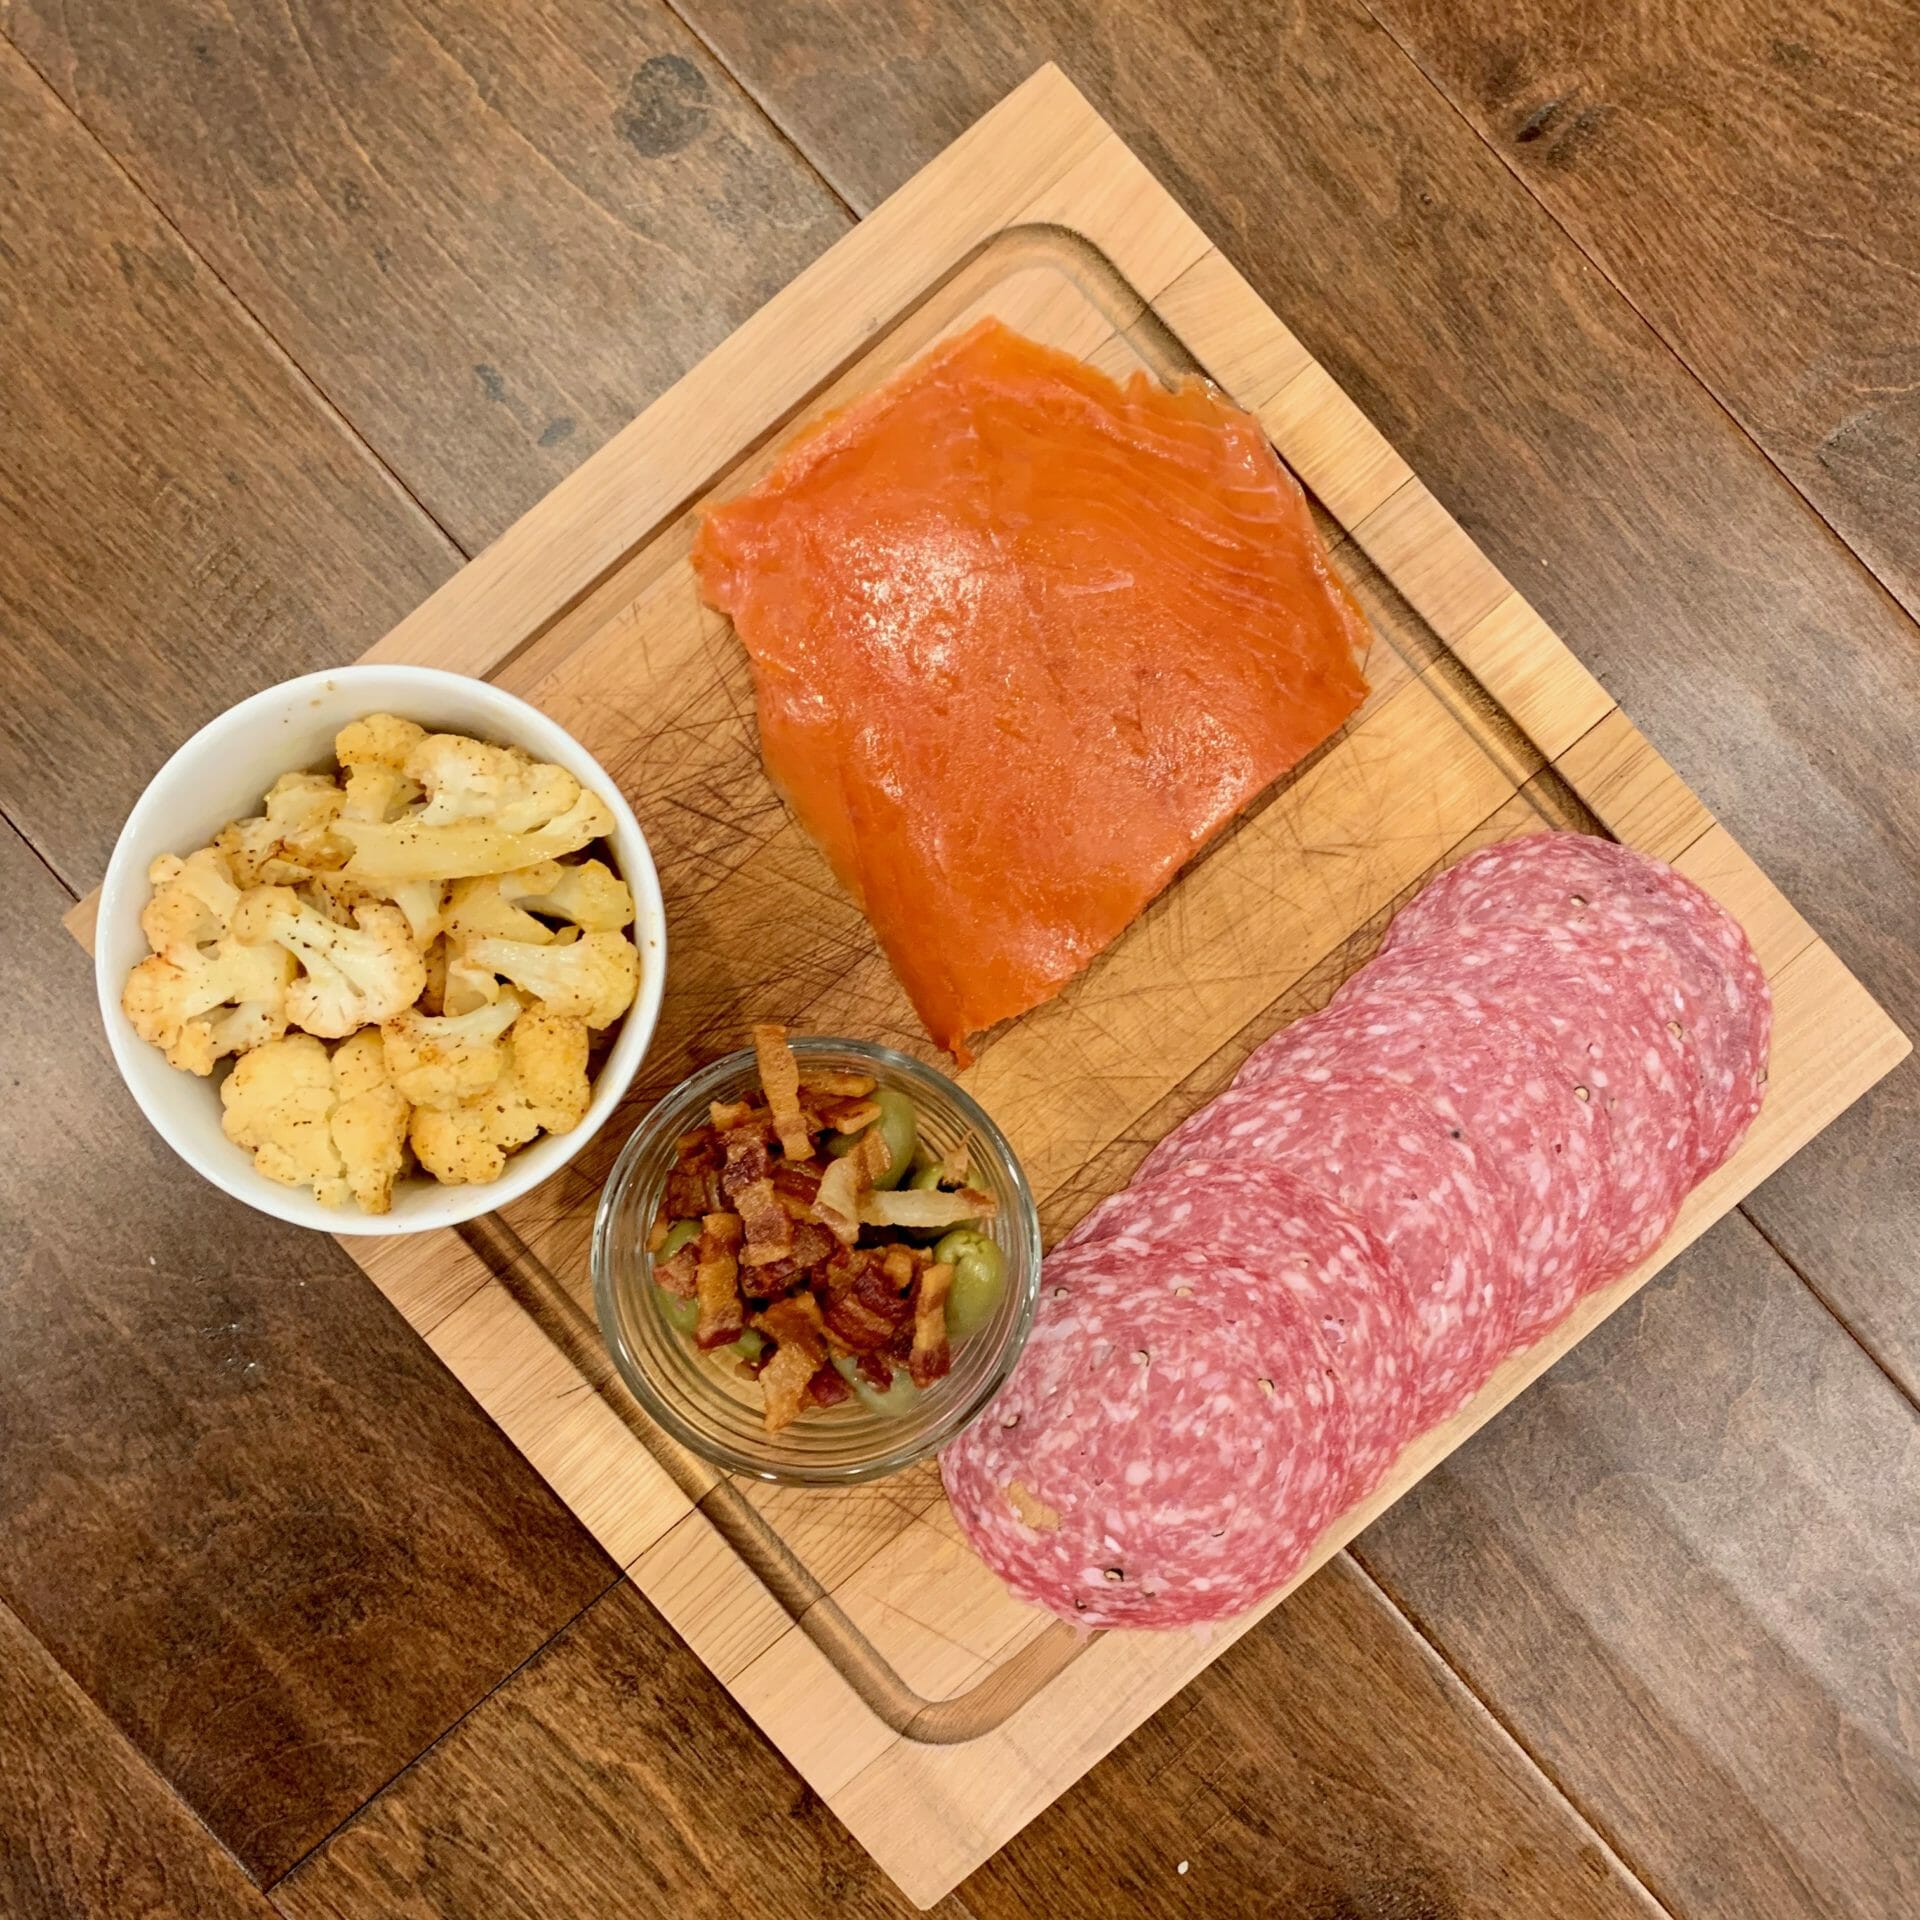 Smoked salmon, uncured salami, olives with bacon and fried cauliflower